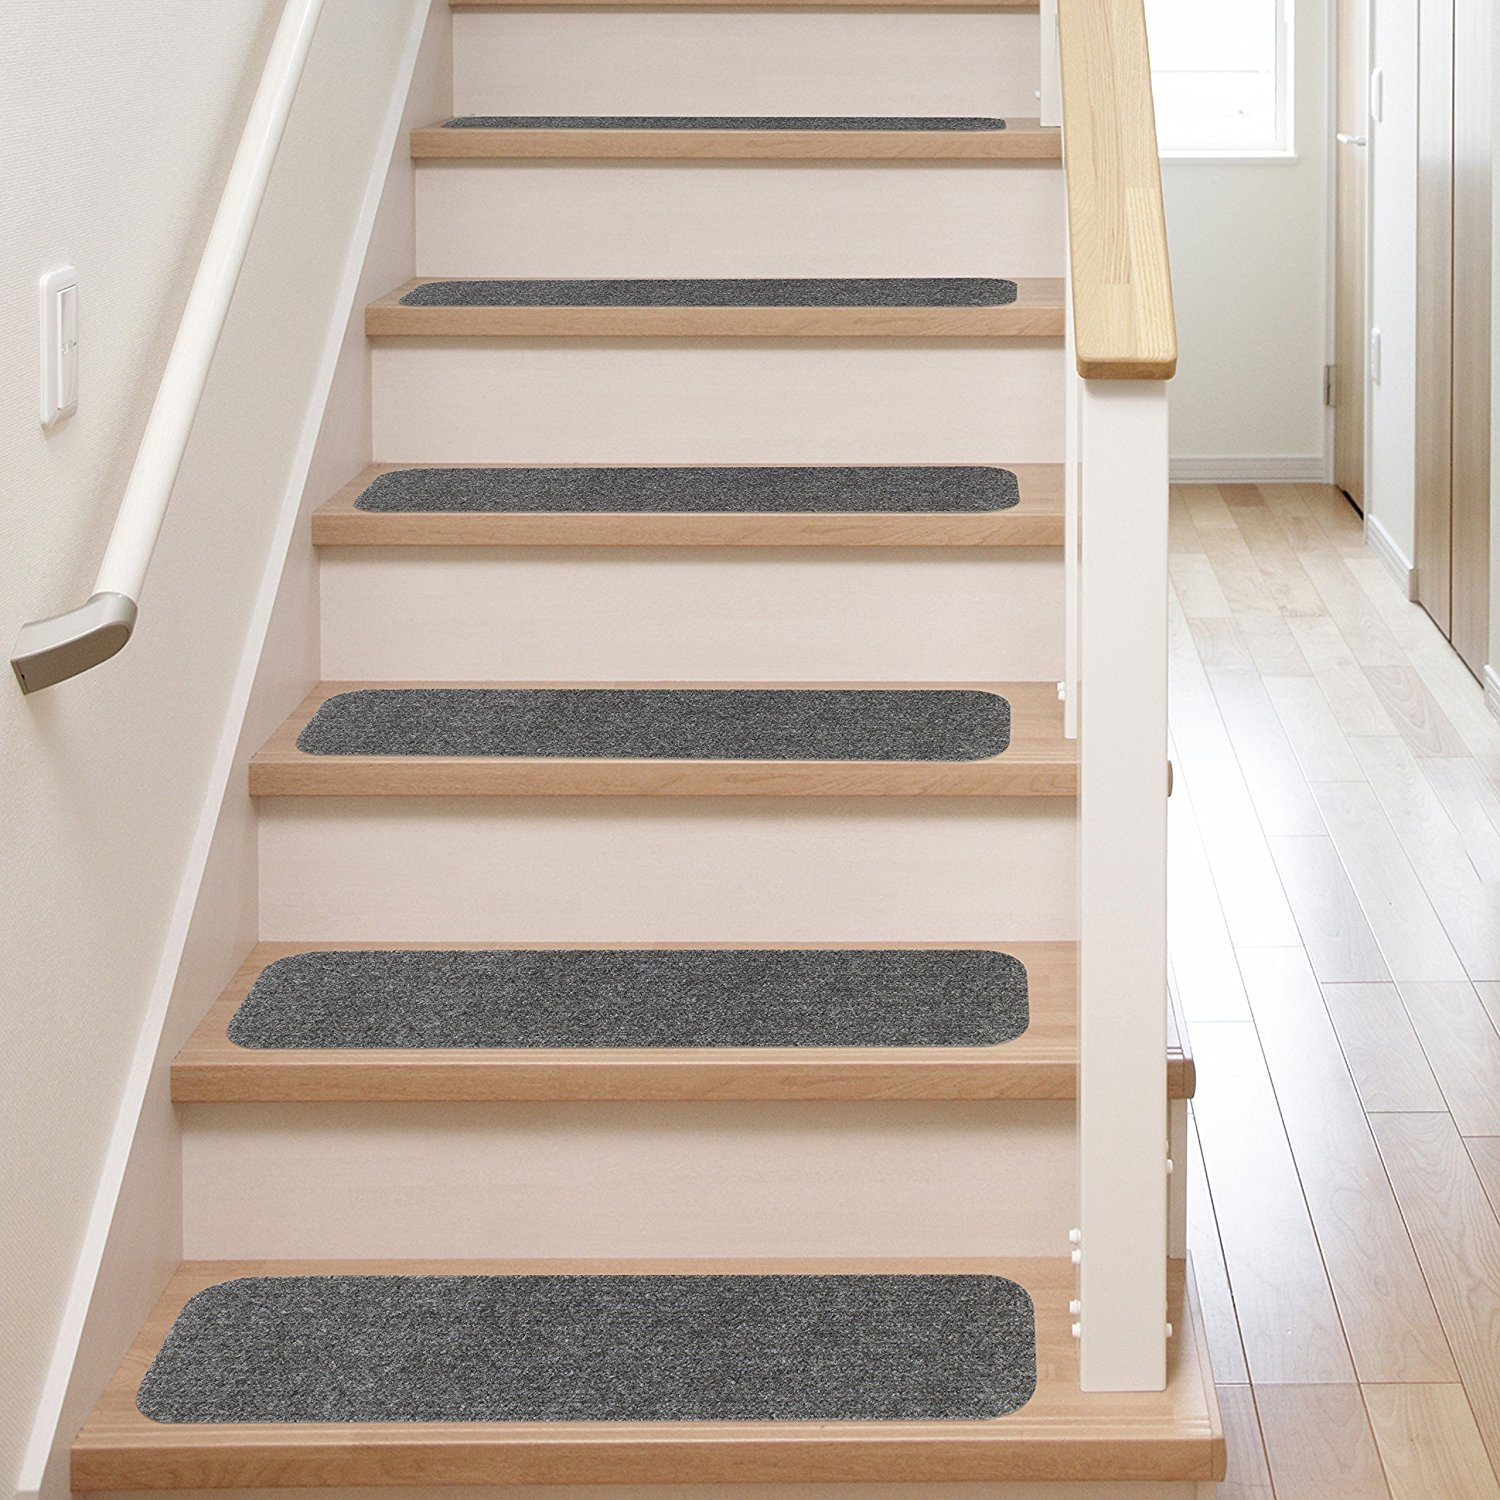 13 Stair Treads Non Slip Carpet Pads Easy Tape Installation With Regard To Indoor Outdoor Carpet Stair Treads (Image 1 of 15)